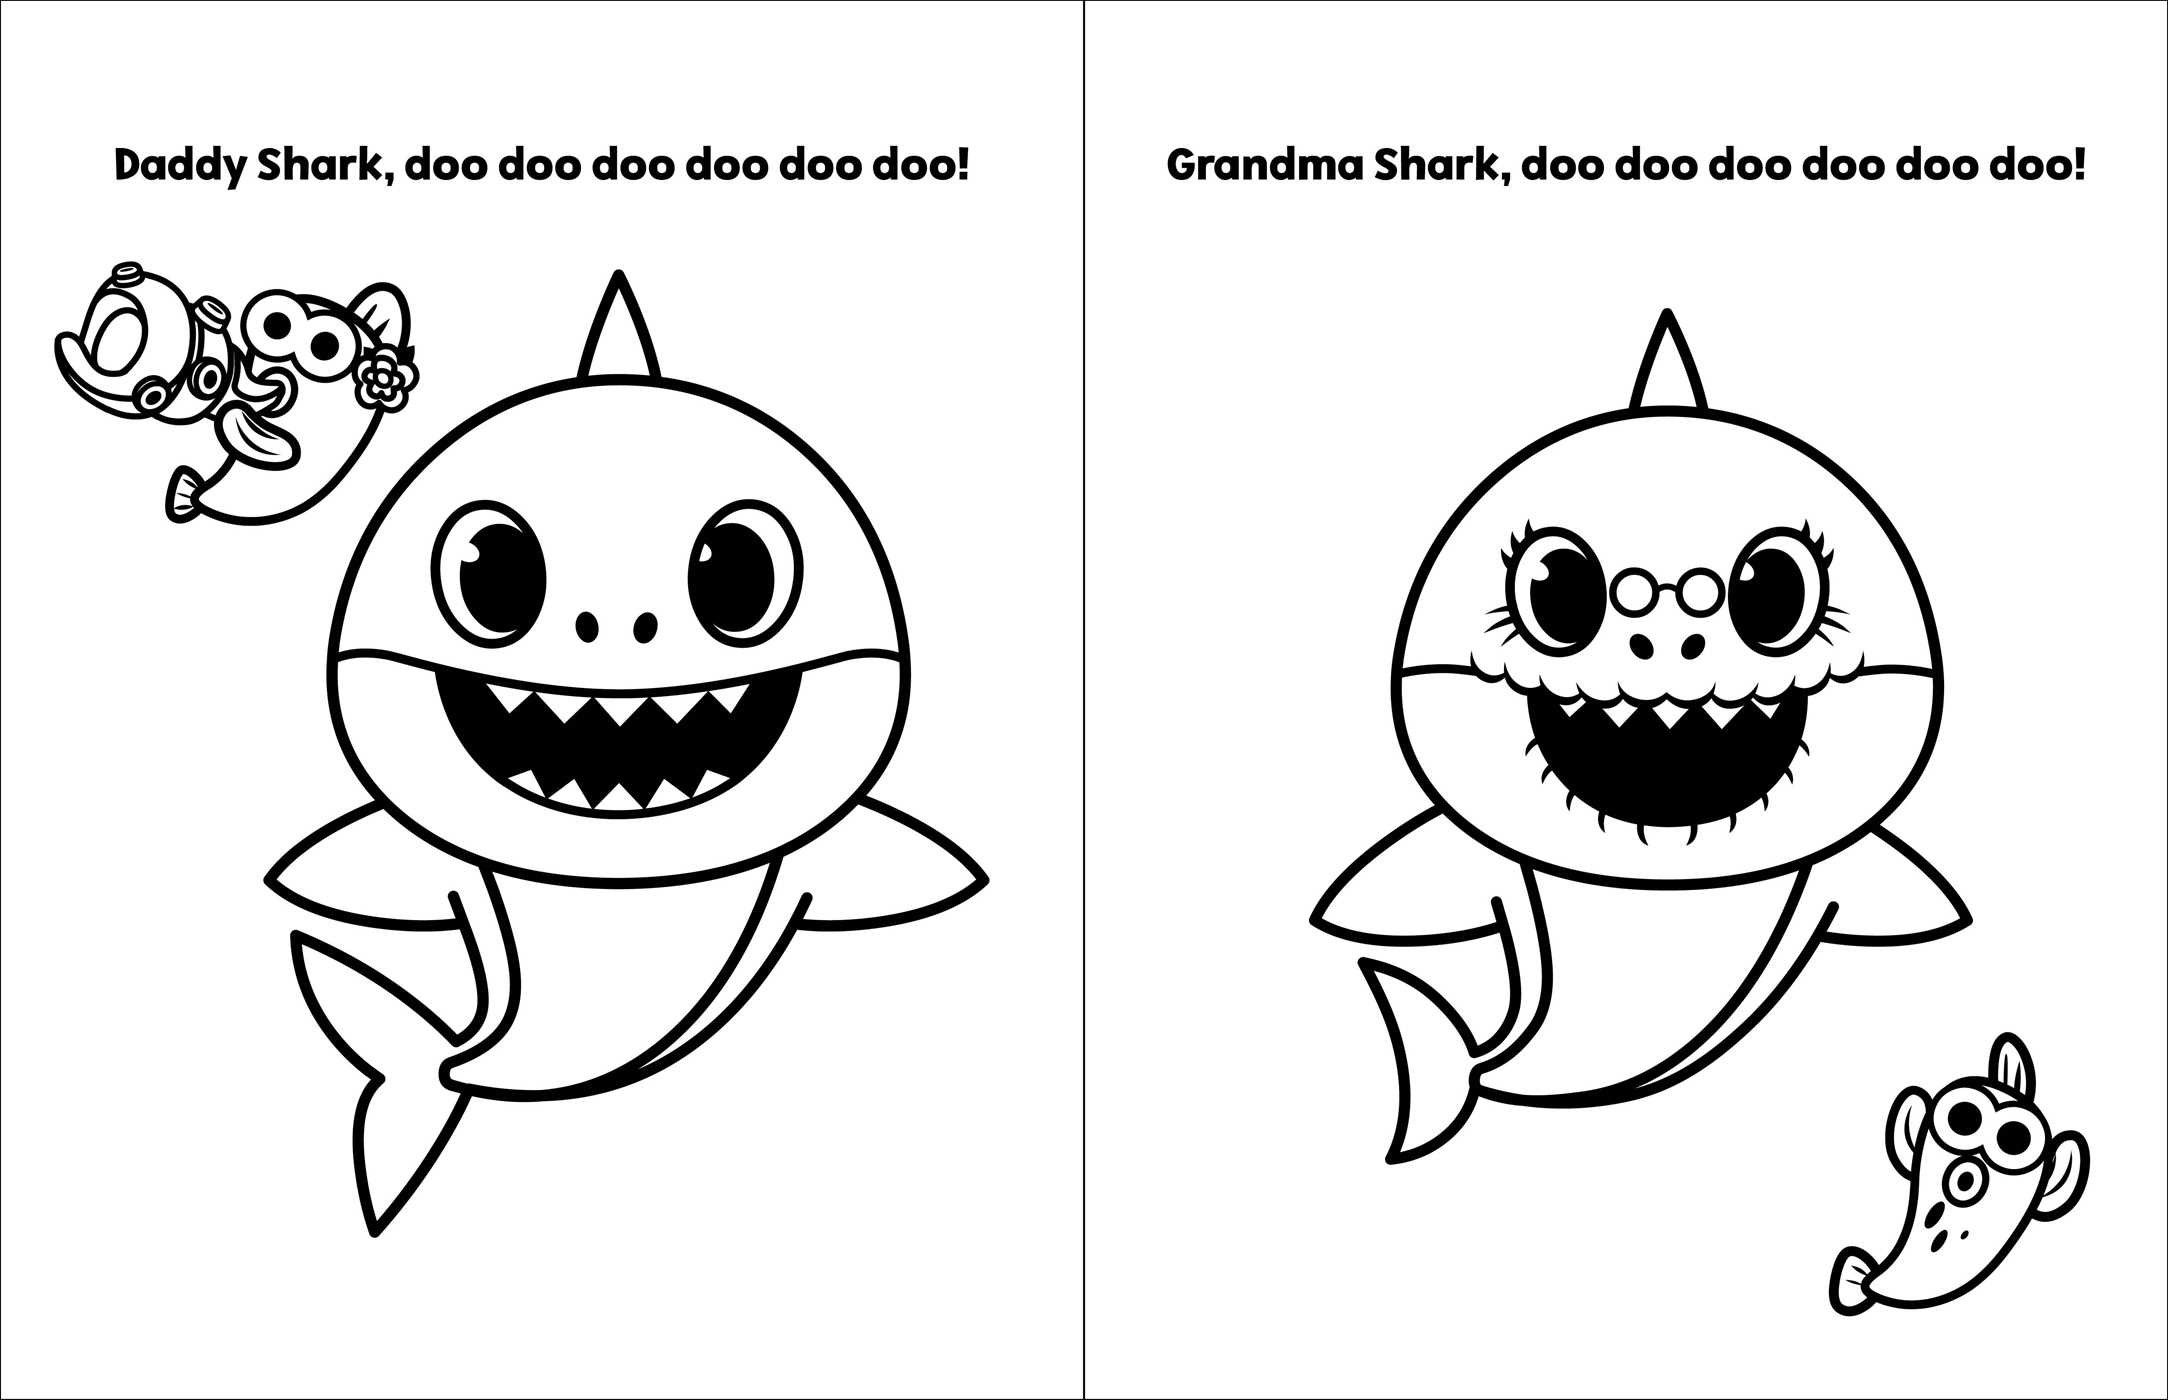 Baby Shark Coloring Page - childrencoloring.us